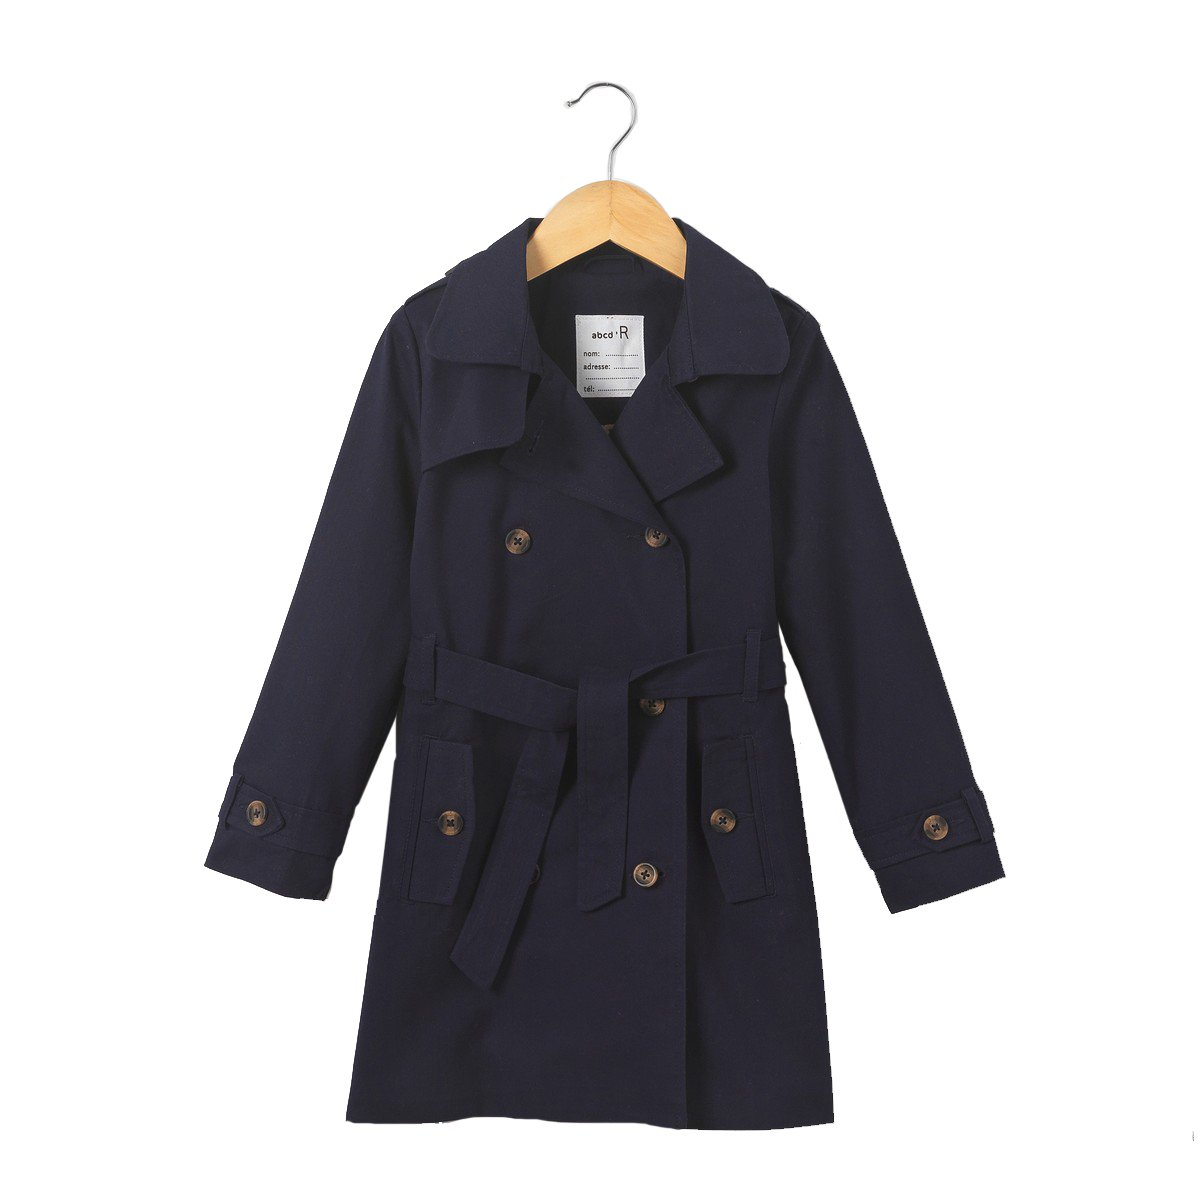 La Redoute Collections Big Girls Belted Cotton Twill Trench Coat, 3-12 Years Blue Size 10 Years - 54 in.